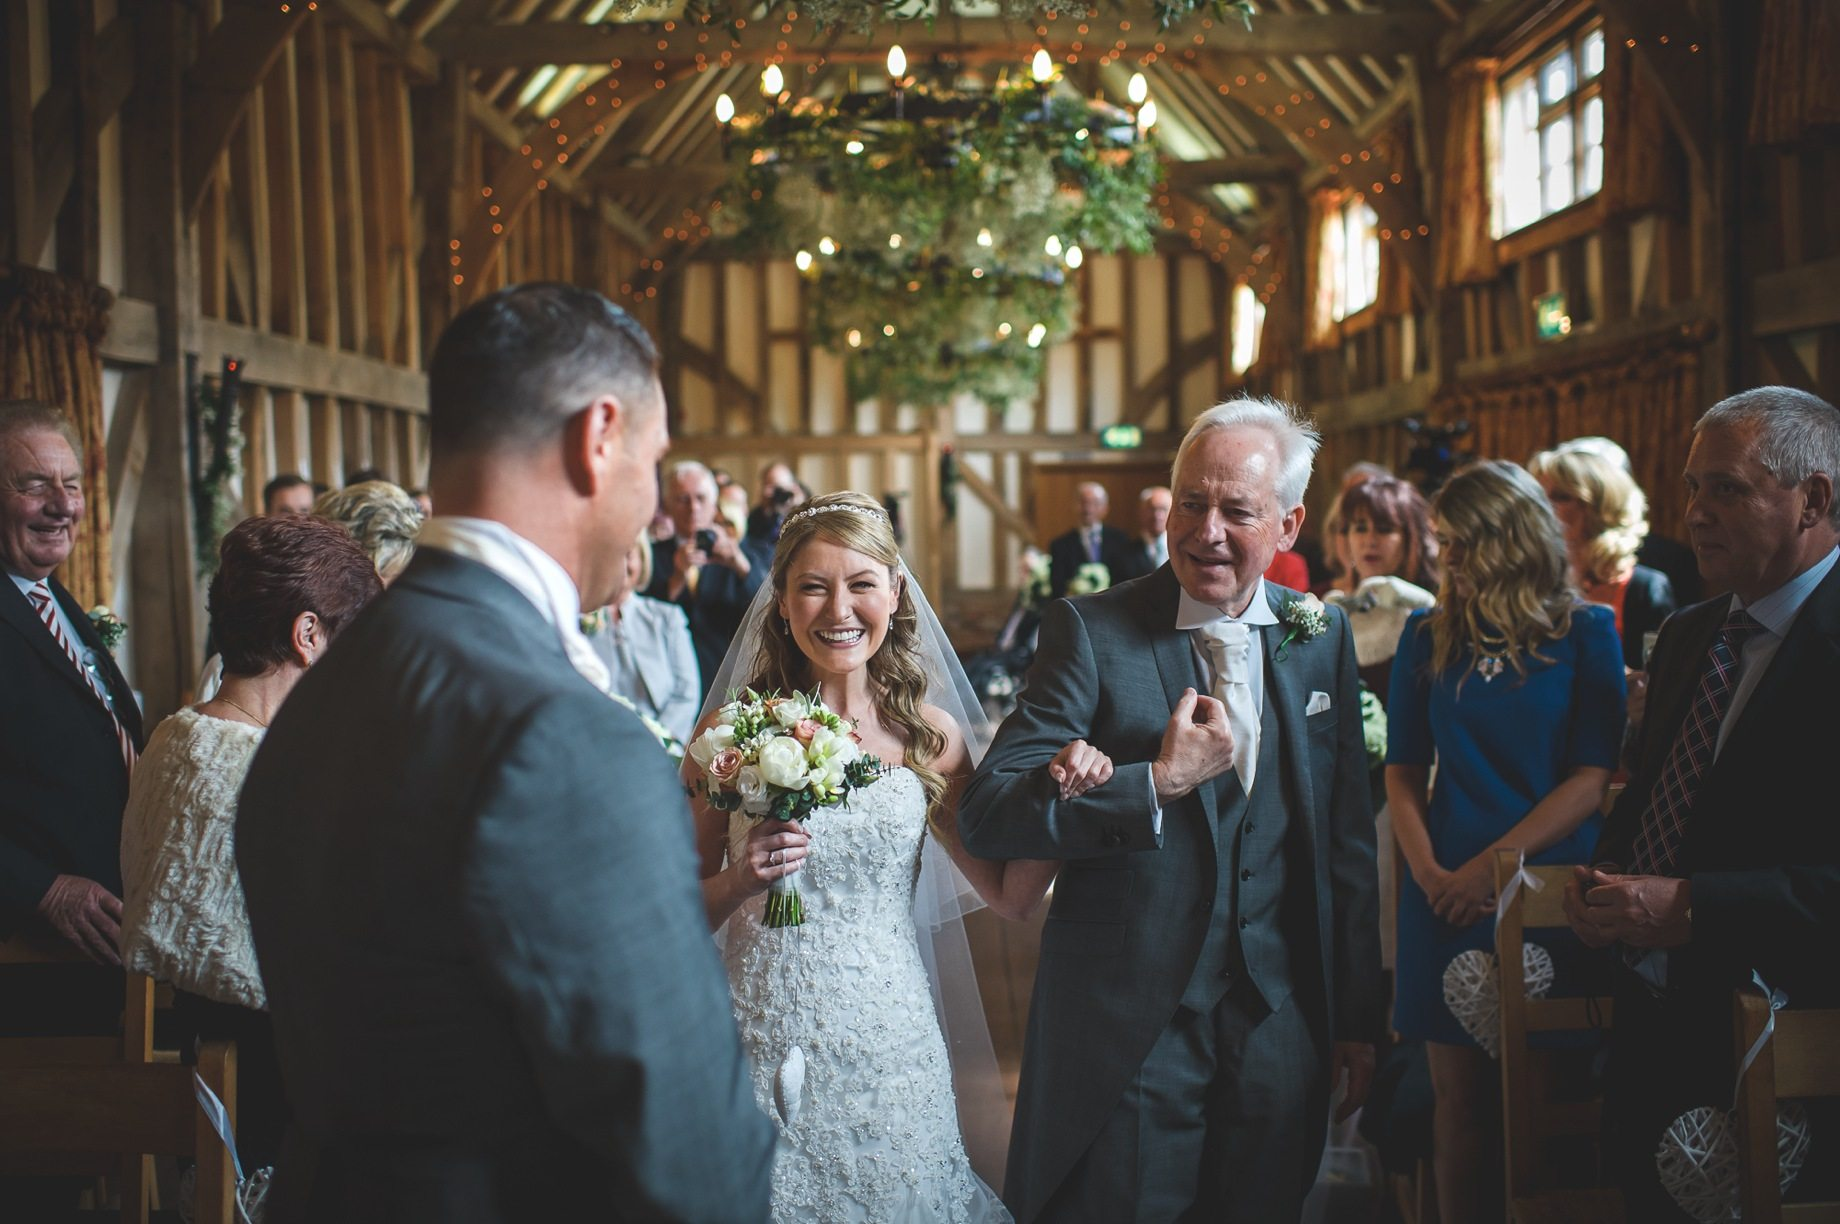 53Best Wedding Photography Guy Collier